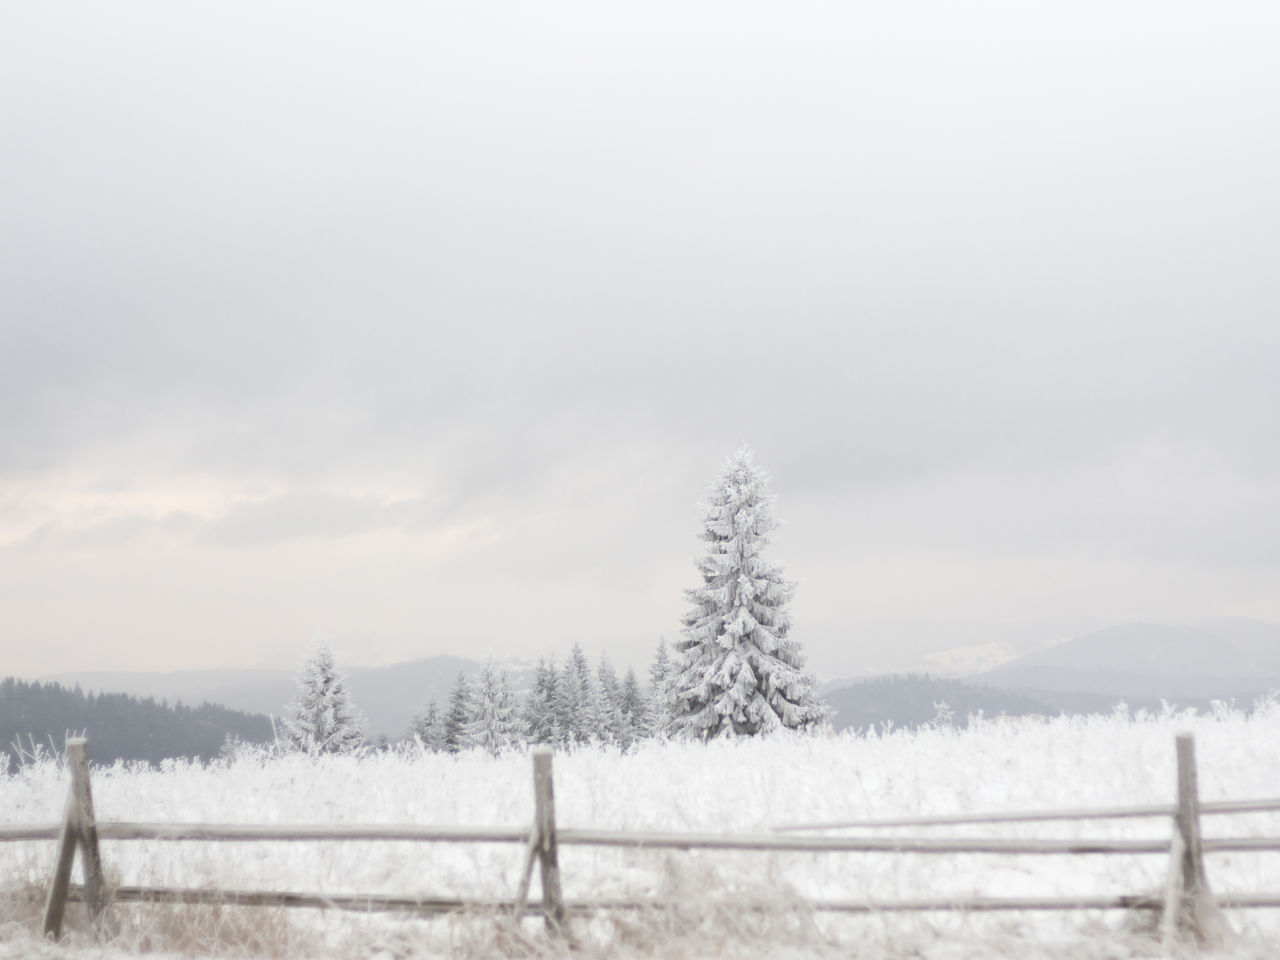 Beautiful stock photos of weihnachtsbaum, tree, nature, cold temperature, winter